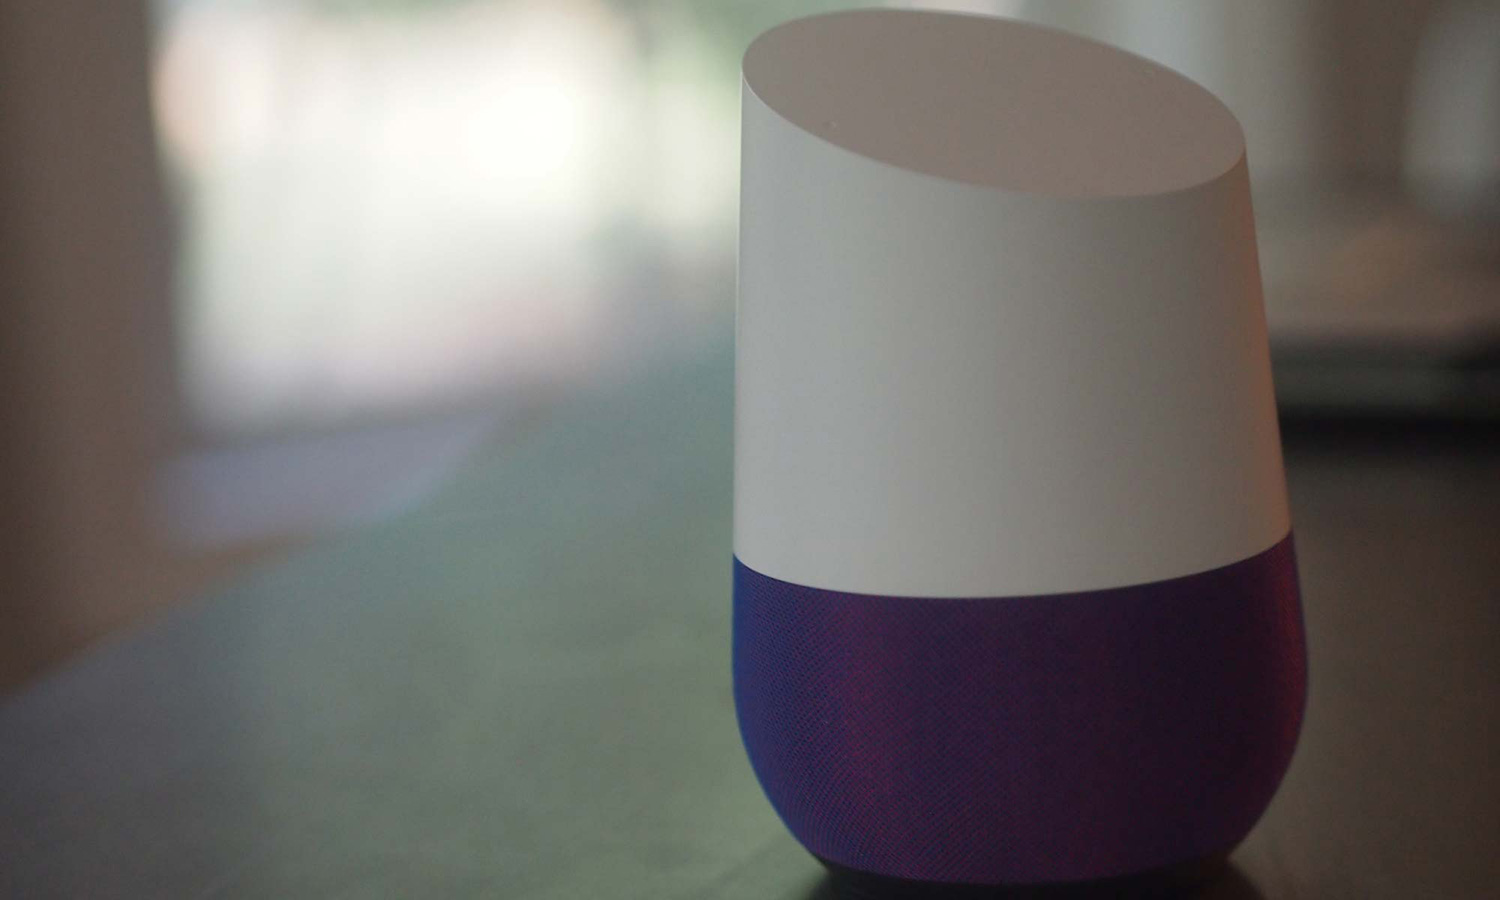 15 Best IFTTT and Google Home Applets   Tom's Guide